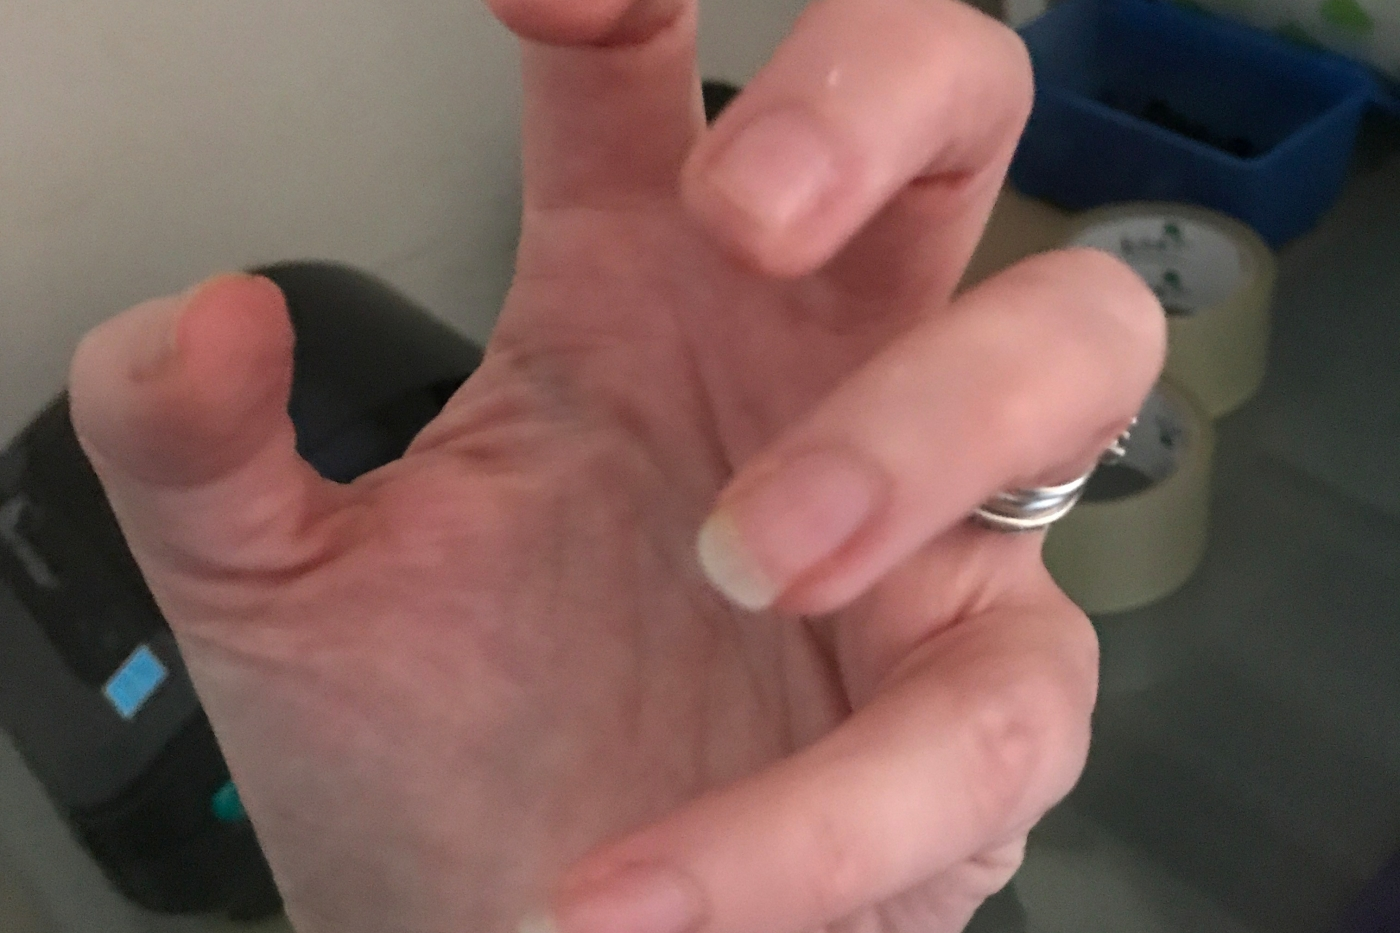 My left hand, frozen and unable to move